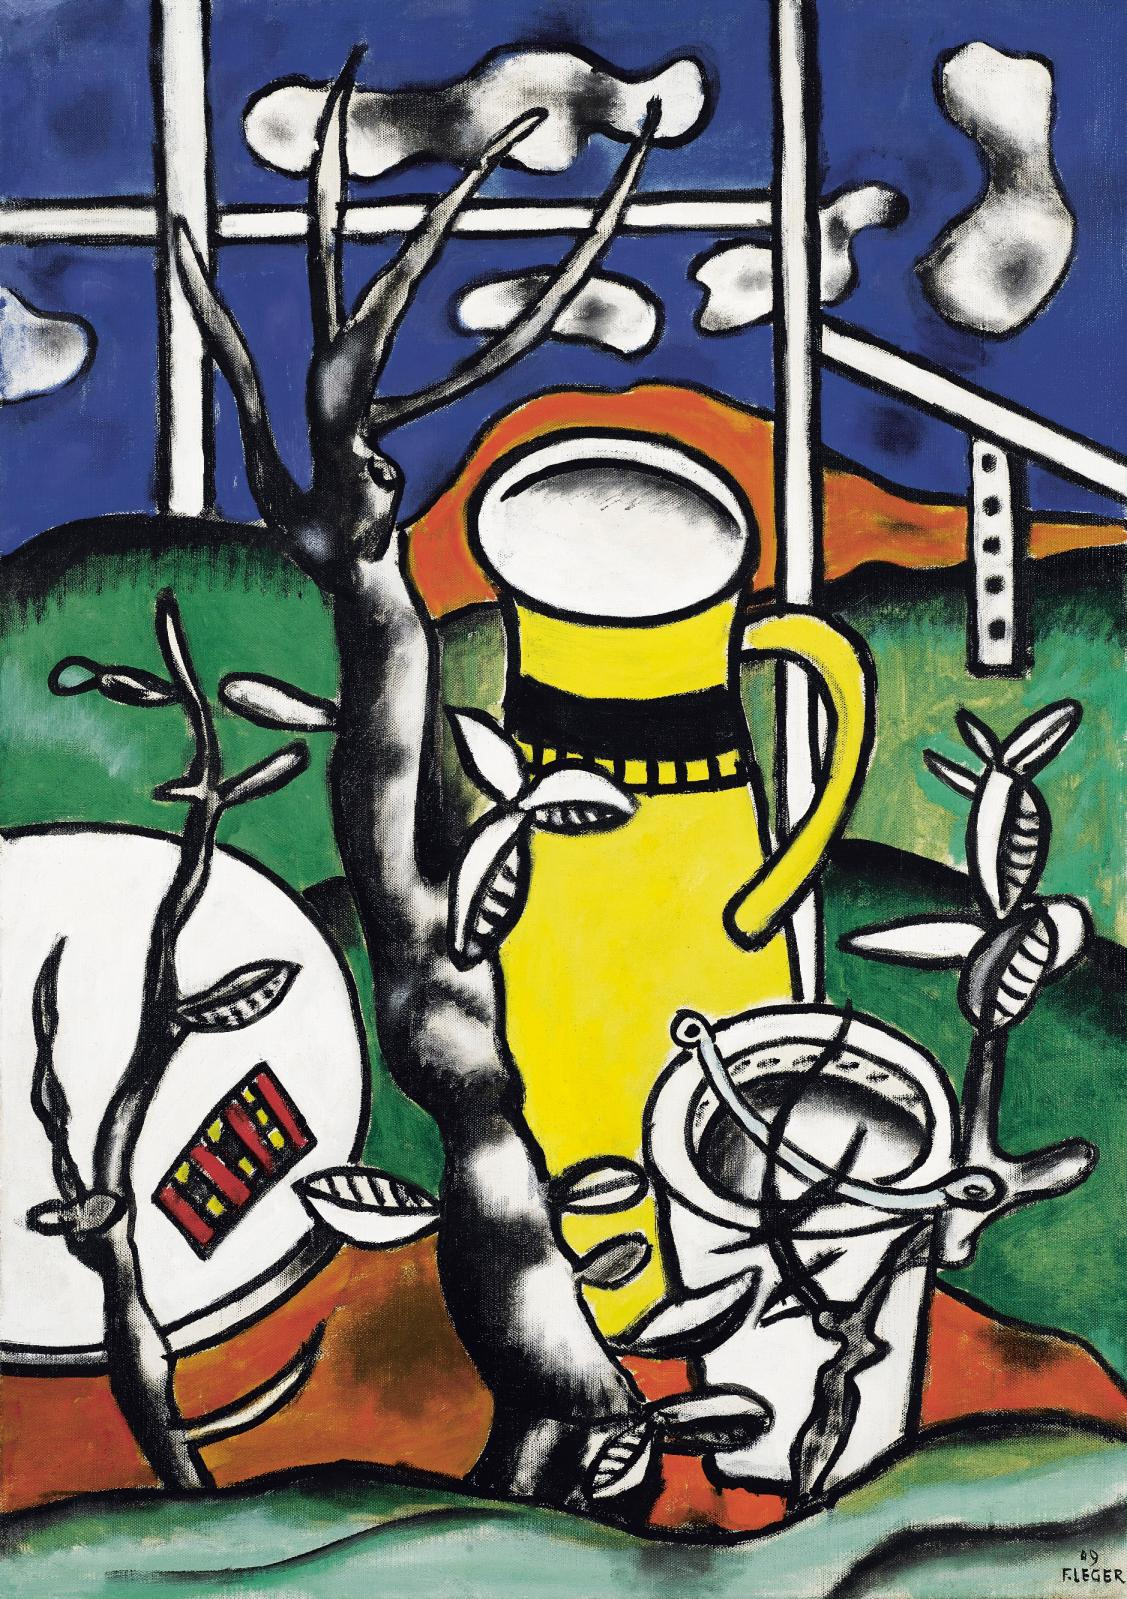 Fernand Léger (1881-1955), Le Vase jaune dans un paysage, (Yellow Vase In a Landscape), 1949, oil on canvas, 91.5 x 65 cm.© ADAGP, Paris,